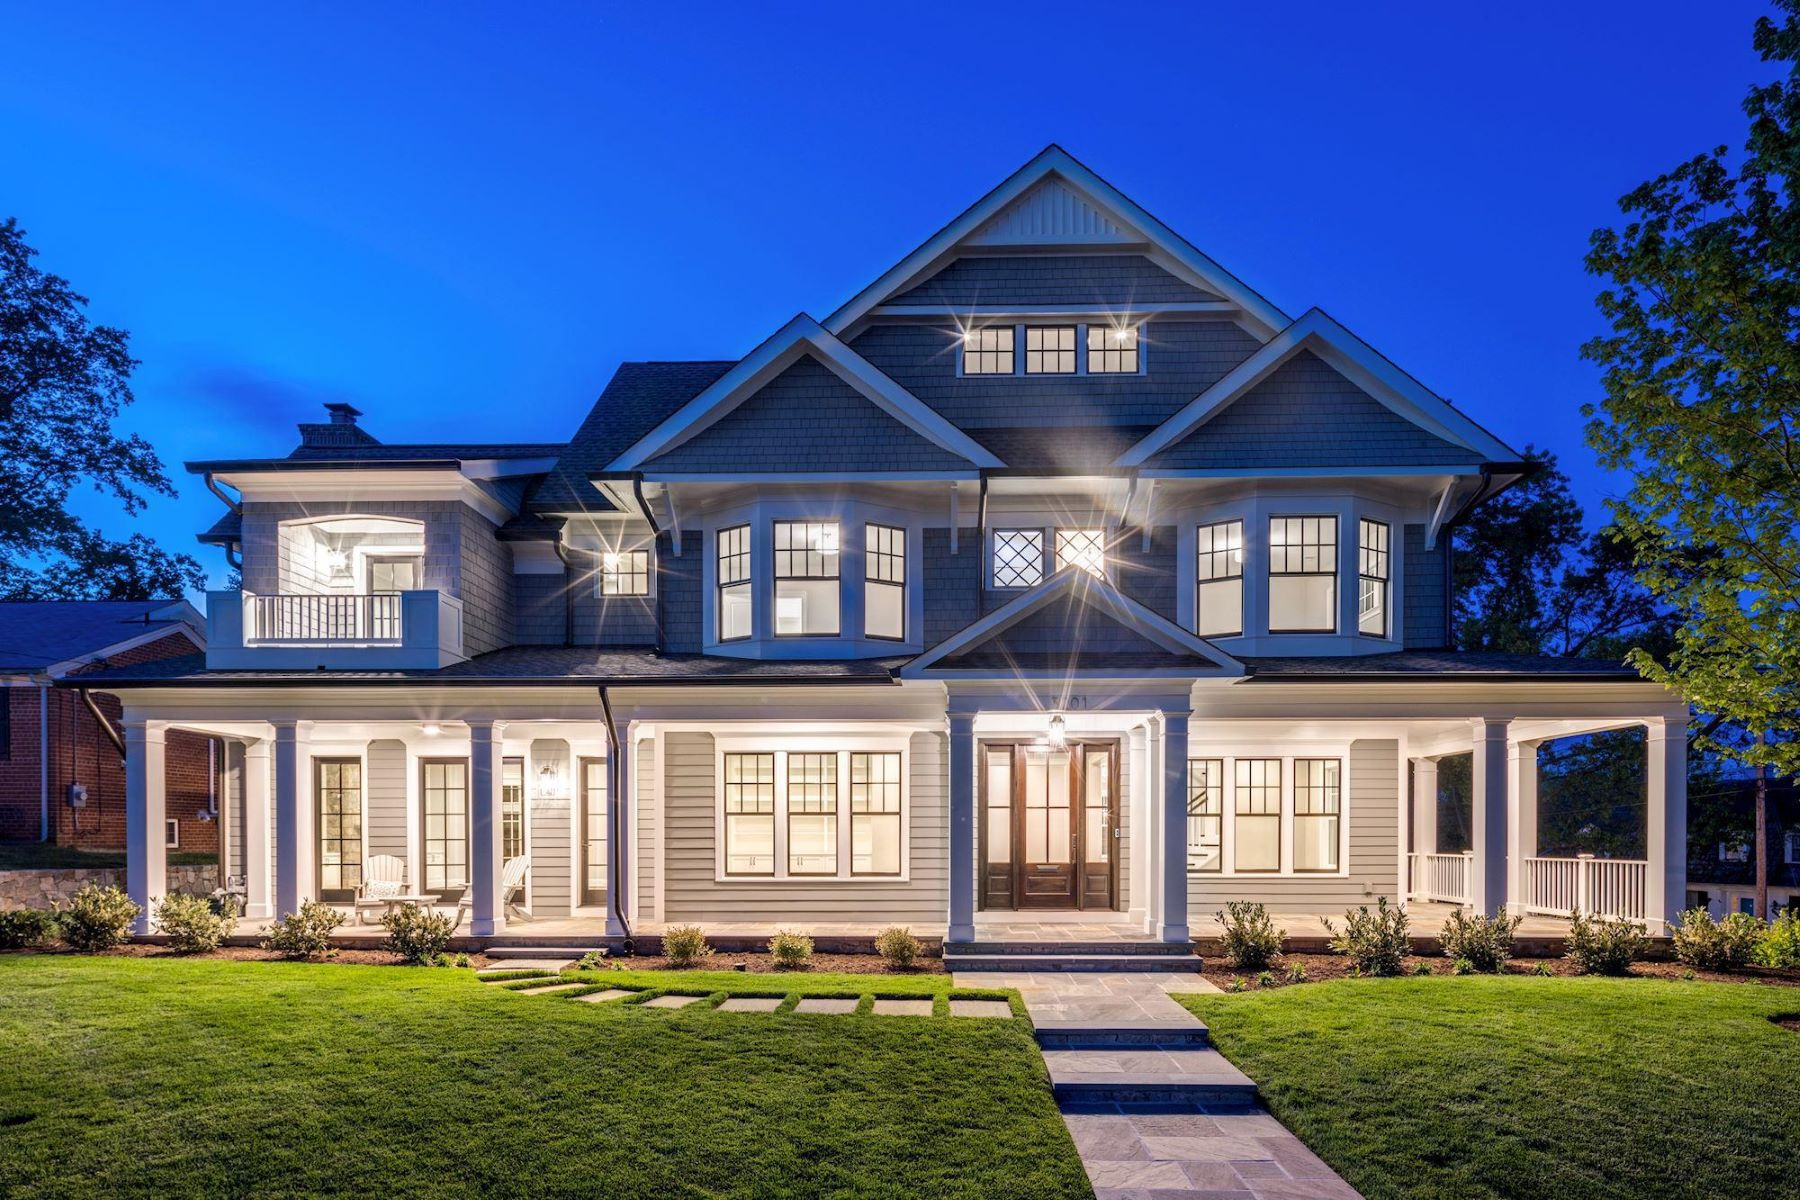 Single Family Homes for Sale at 3201 Winnett Rd Chevy Chase, Maryland 20815 United States